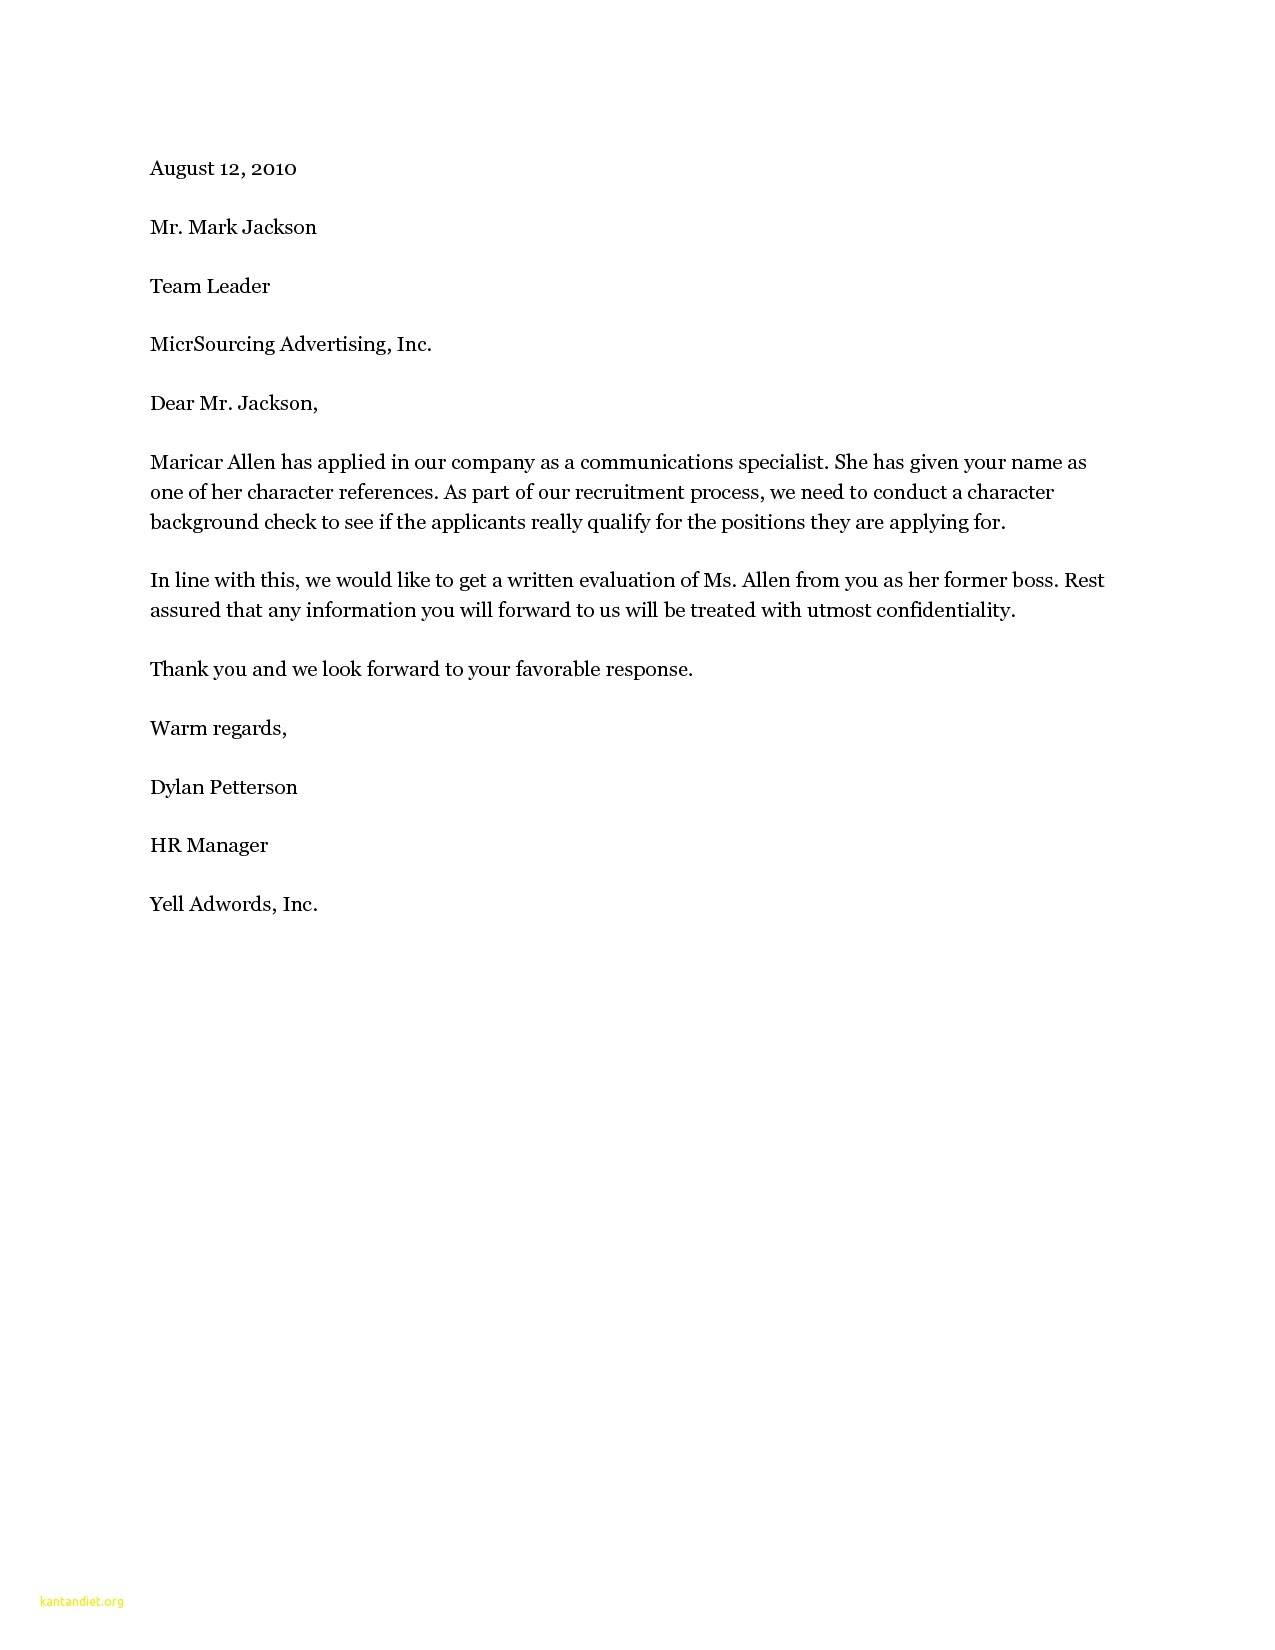 Personal Reference Letter Template - Best Sample Cover Letter Template